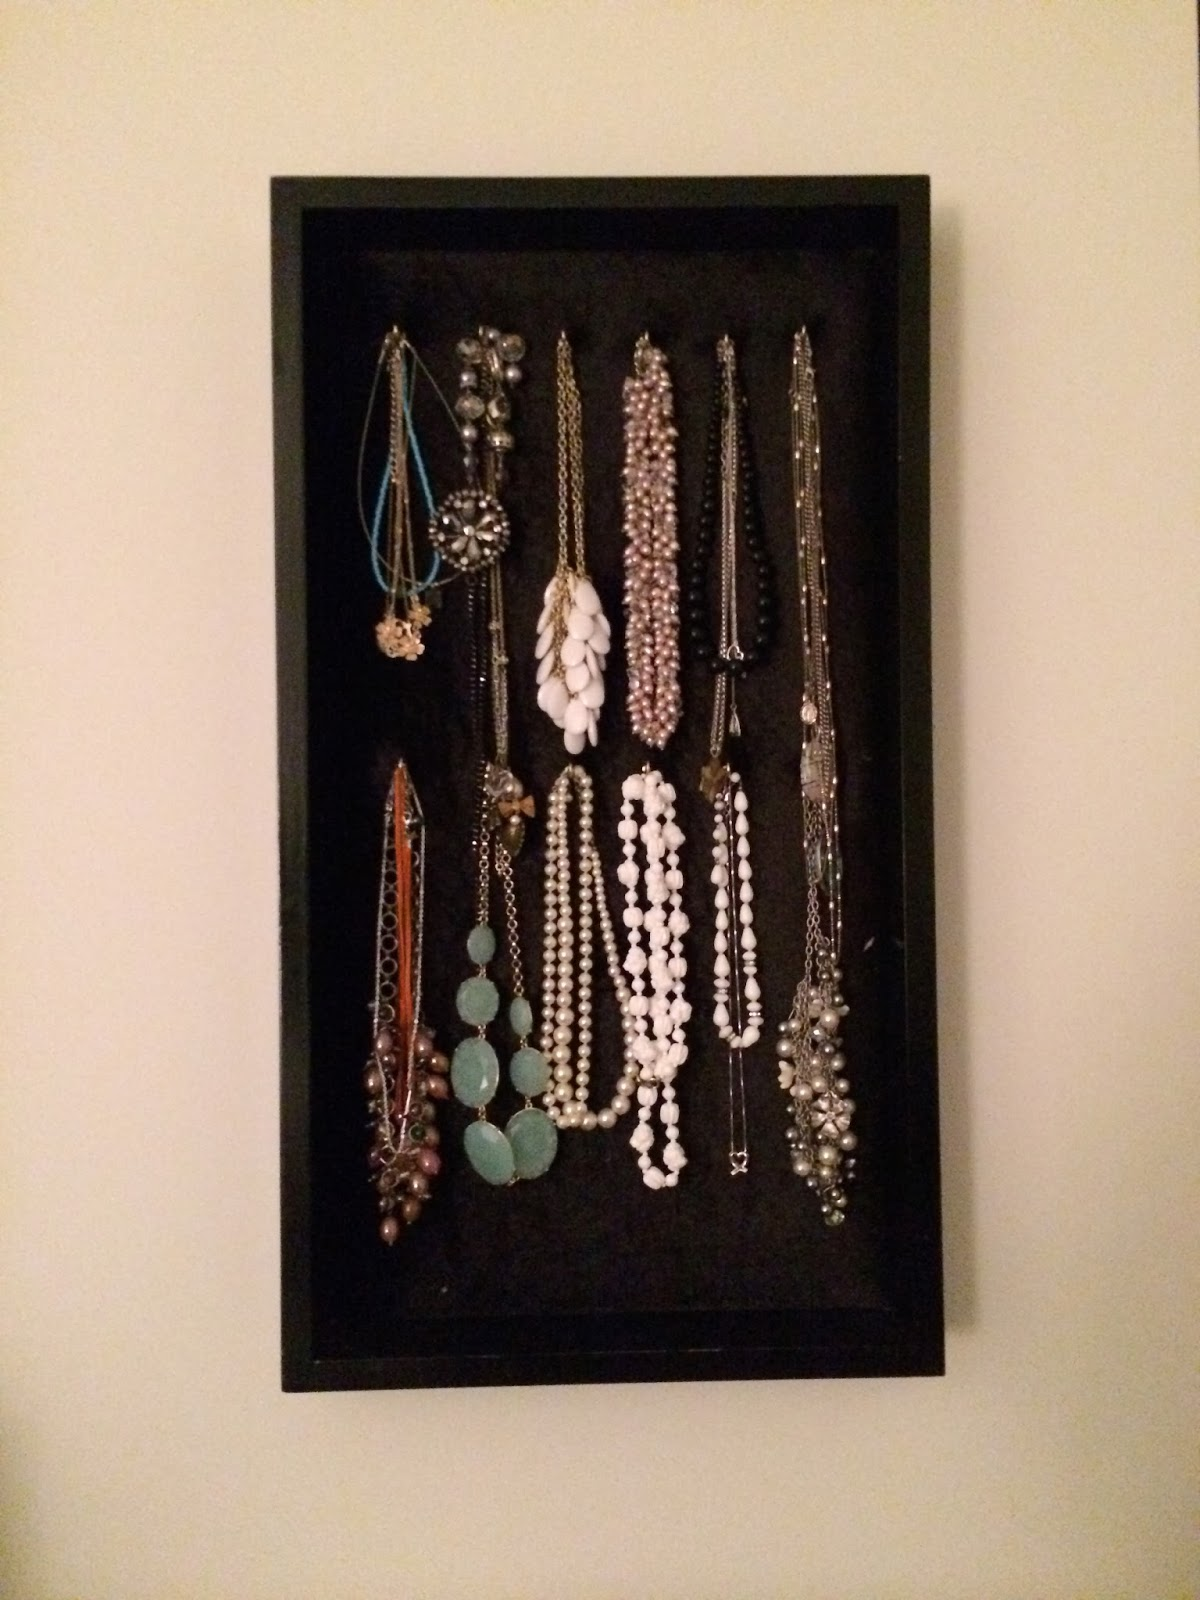 2 Girls, 1 Year, 730 Moments to Share: DIY Projects: Jewelry ...